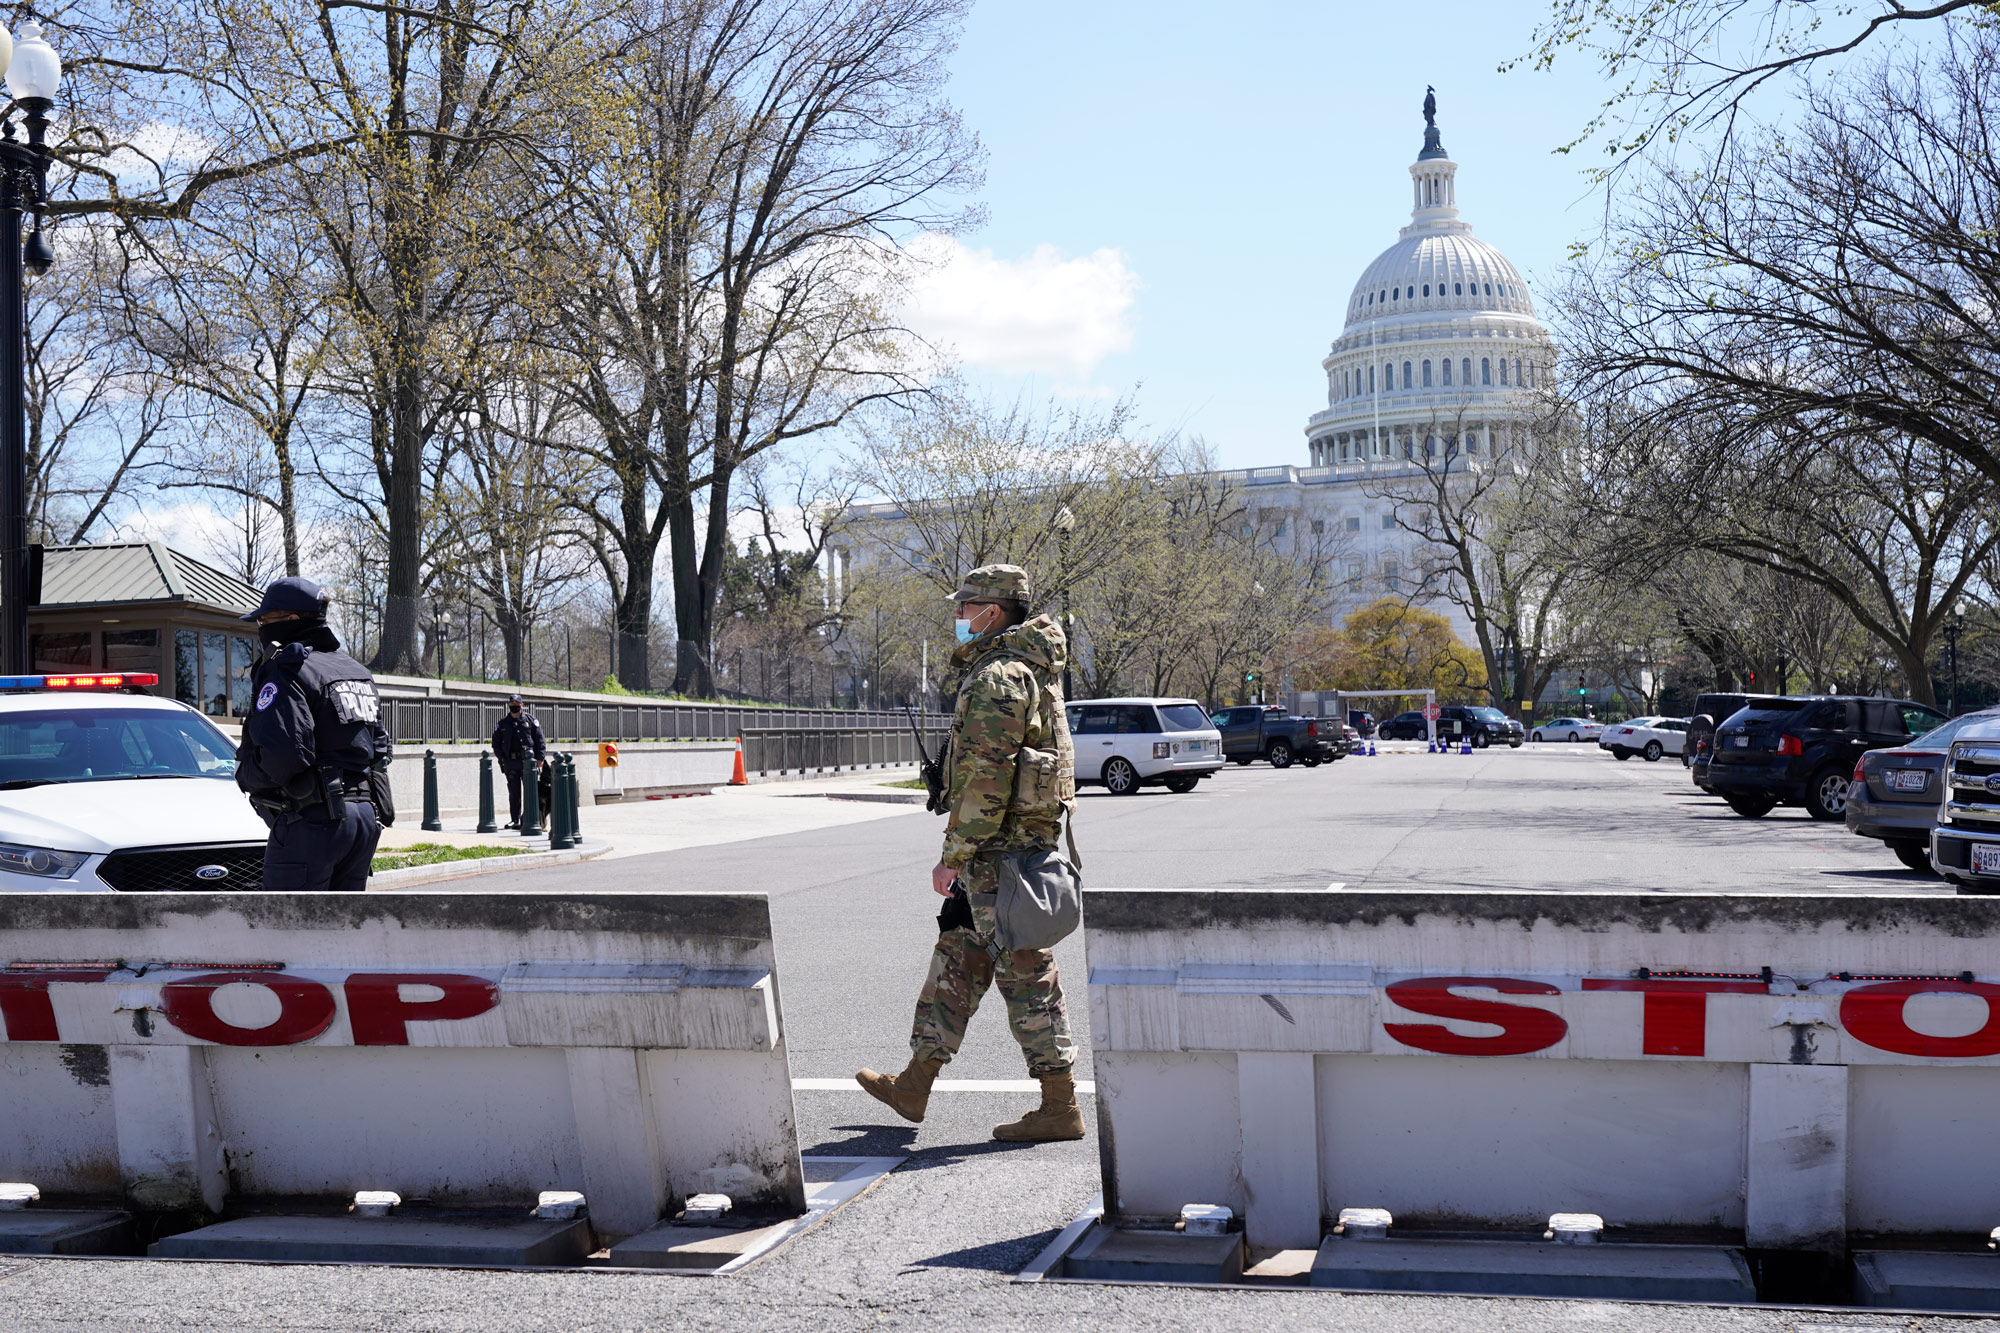 Troops stand guard at a barrier on Capitol Hill in Washington, DC, on April 2.